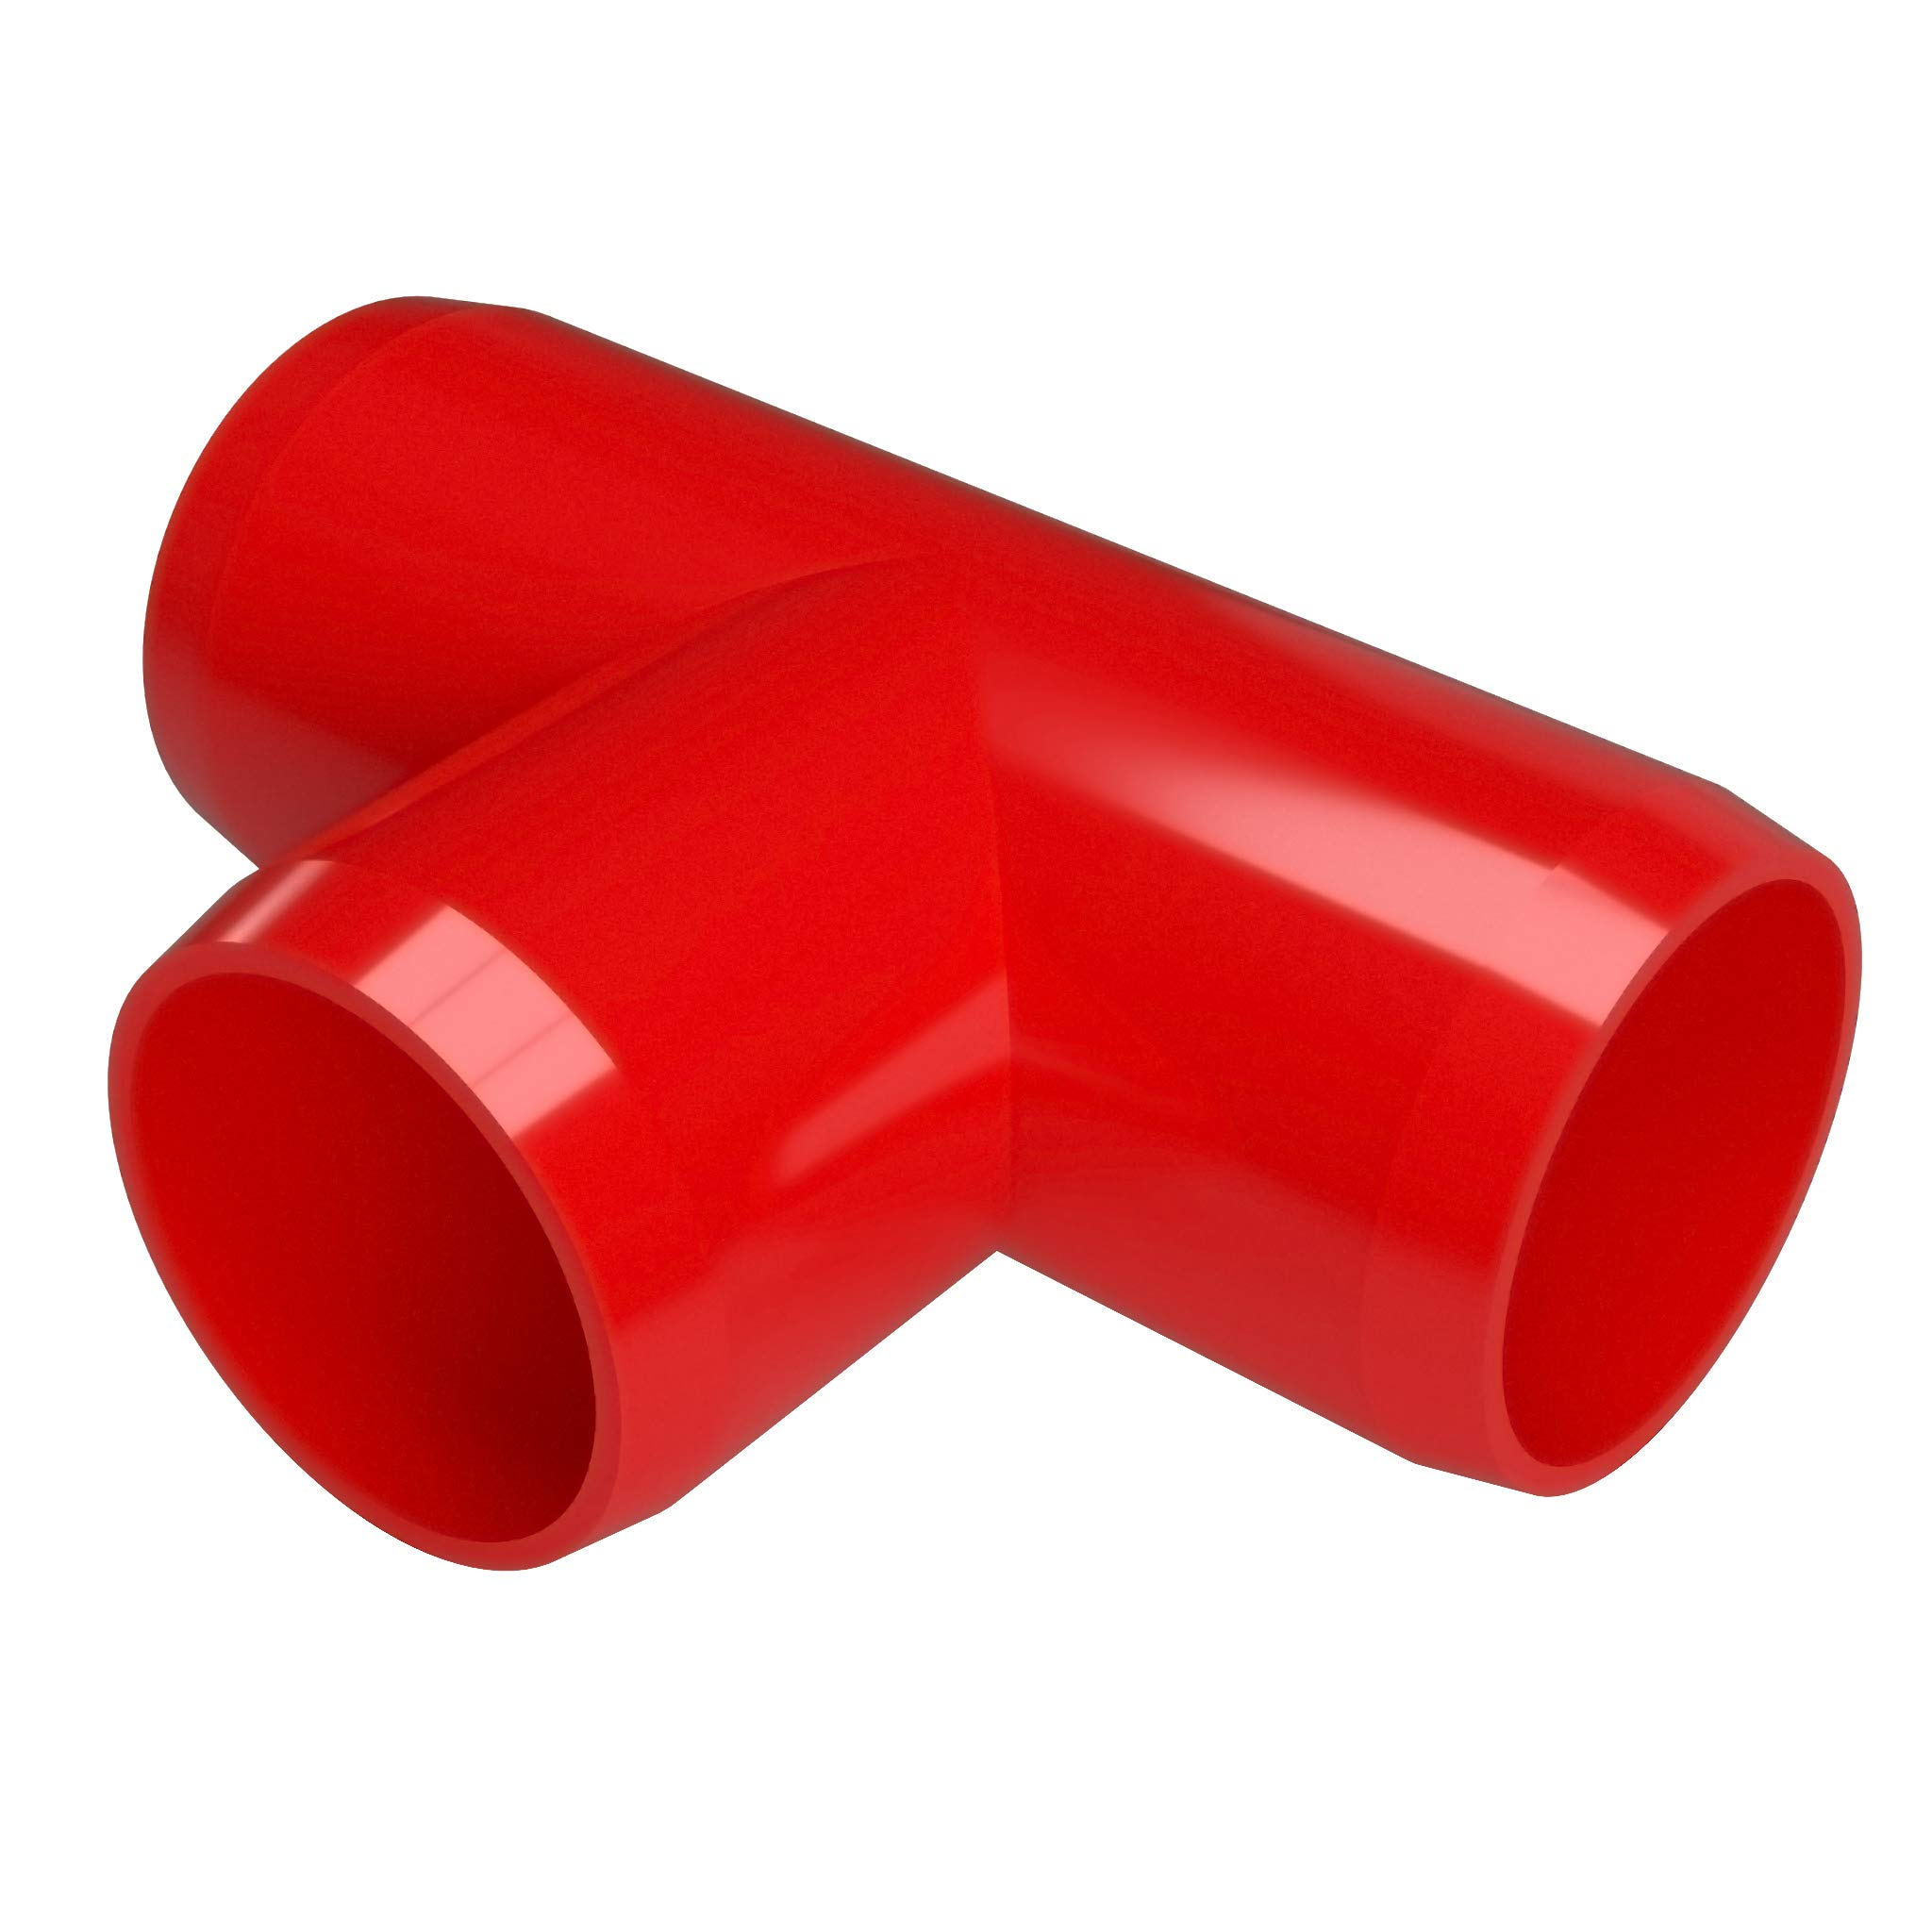 FORMUFIT F114TEE-RD-4 Tee PVC Fitting, Furniture Grade, 1-1/4'' Size, Red (Pack of 4)